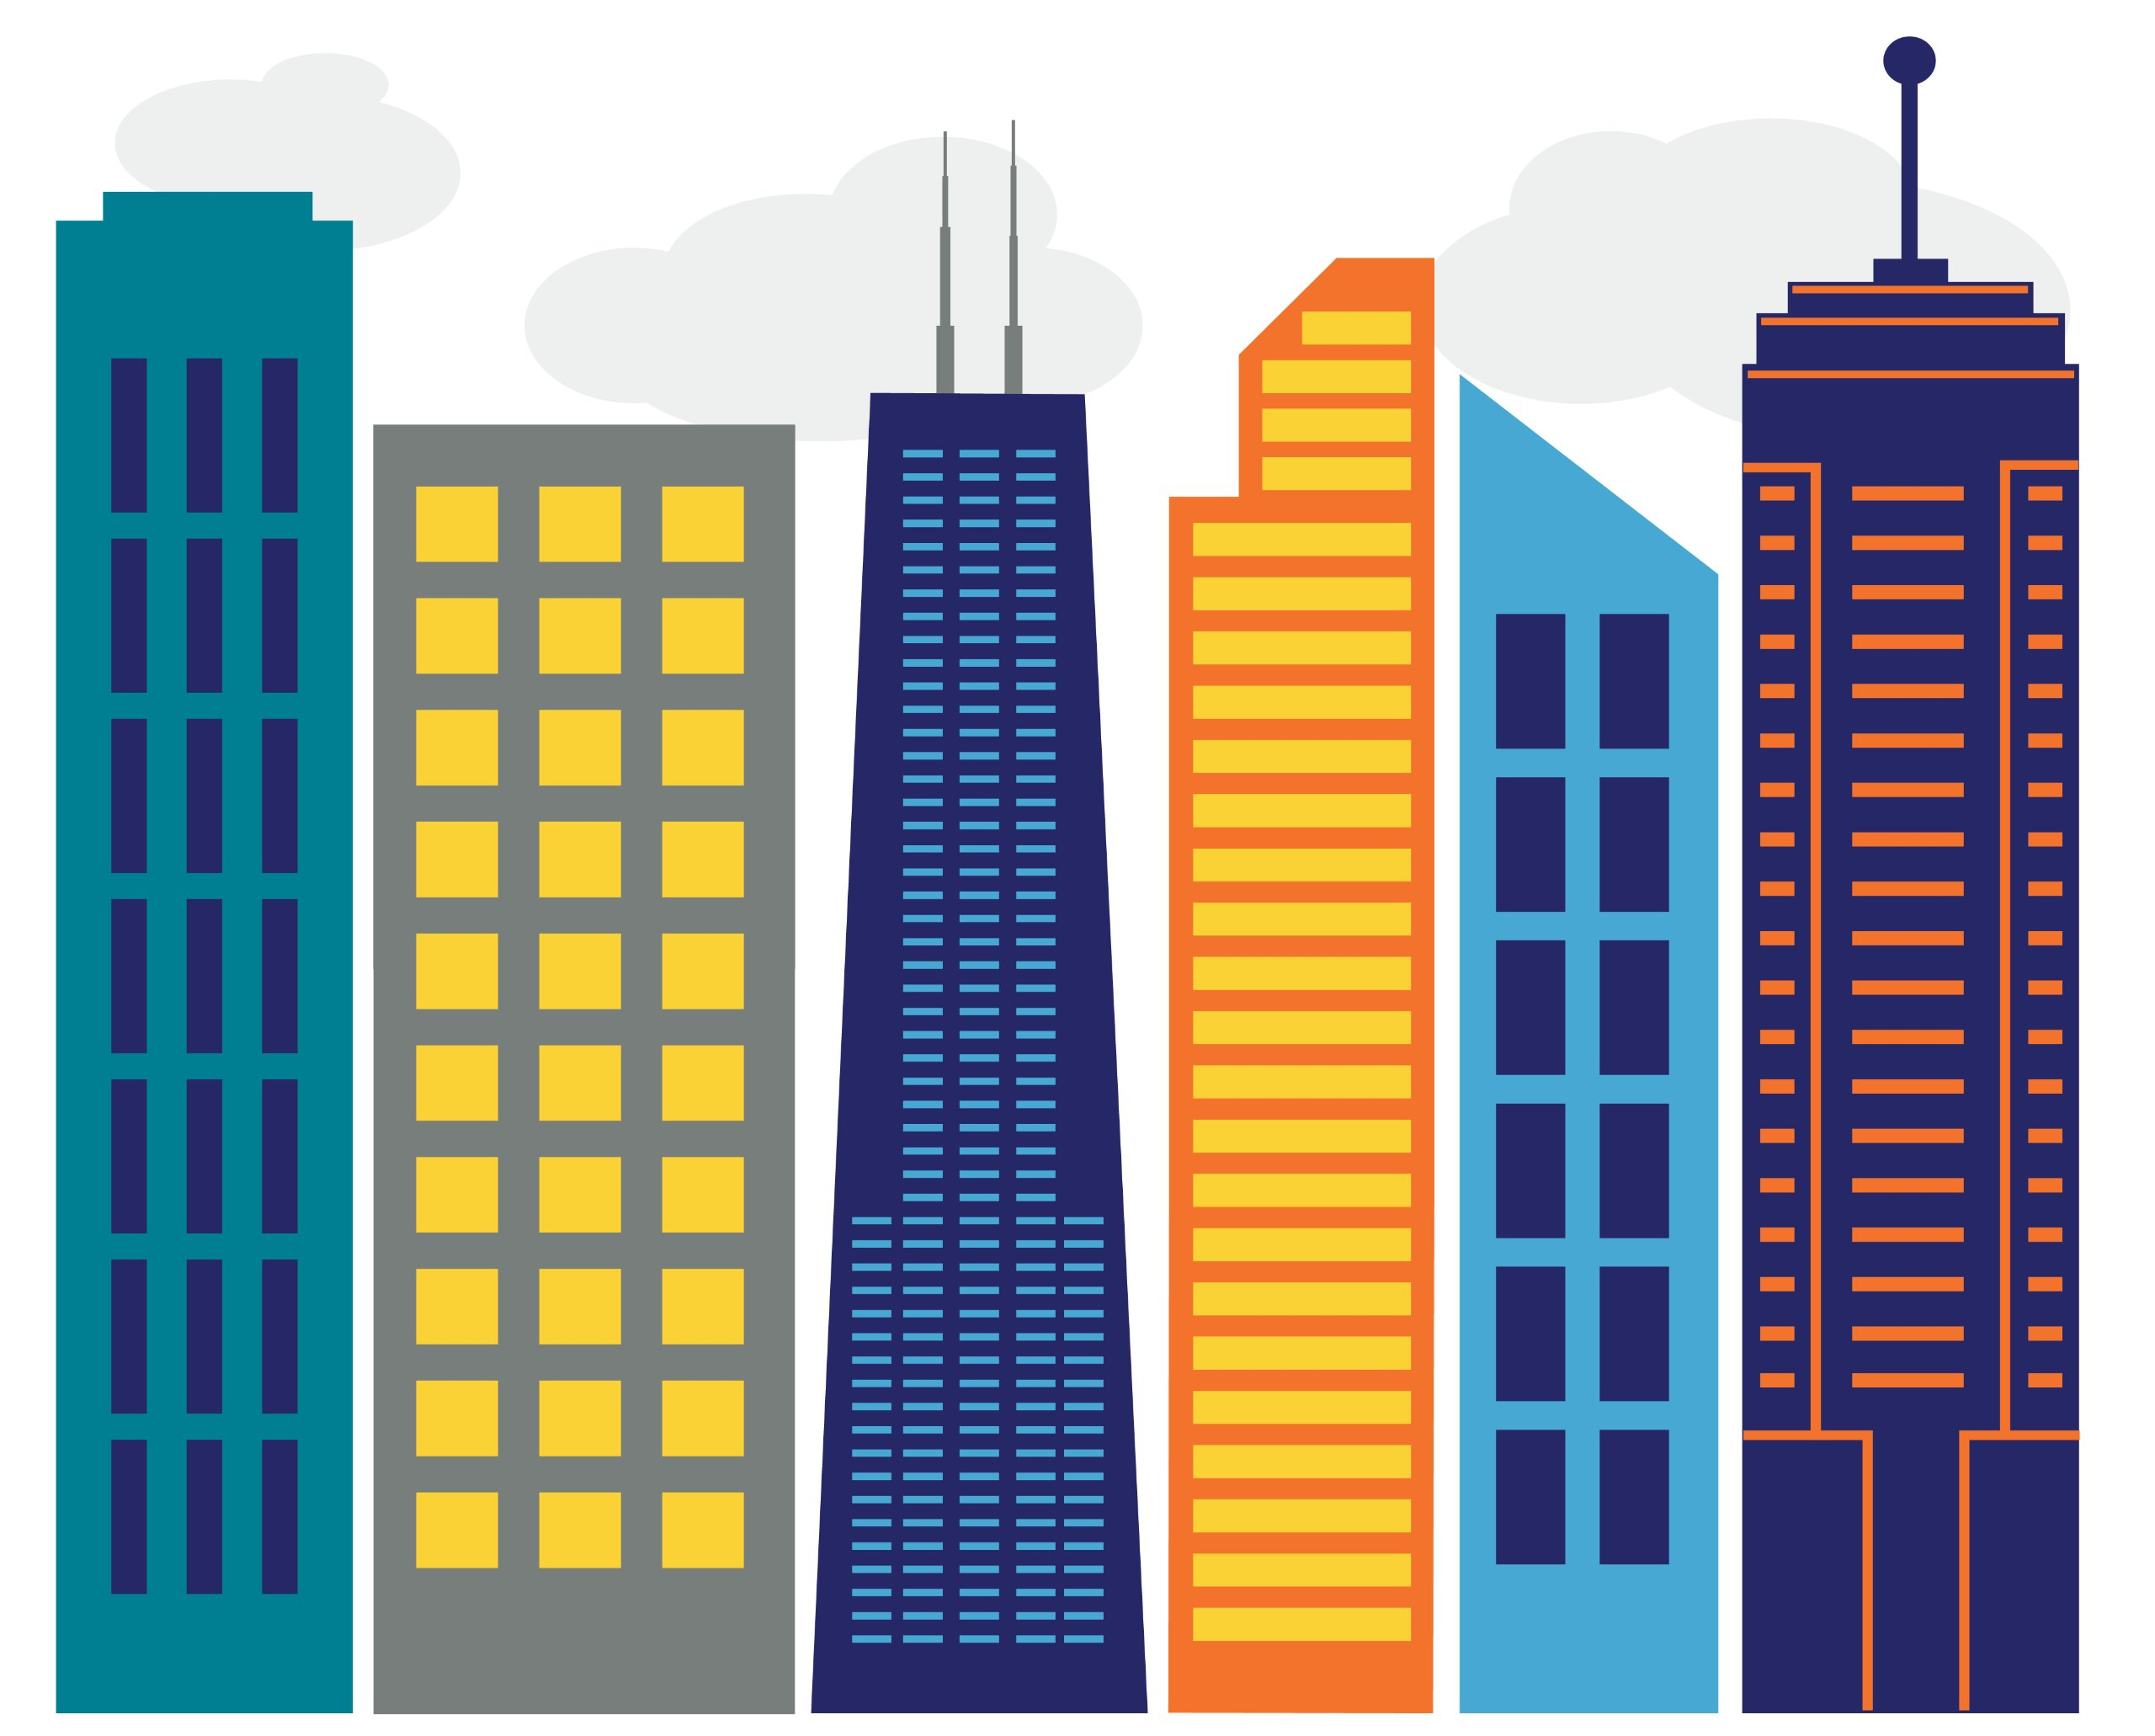 Small Bold City Skyline - Vinyl Wall Art Decal for Homes, Offices, Kids Rooms, Nurseries, Schools, High Schools, Colleges, Universities